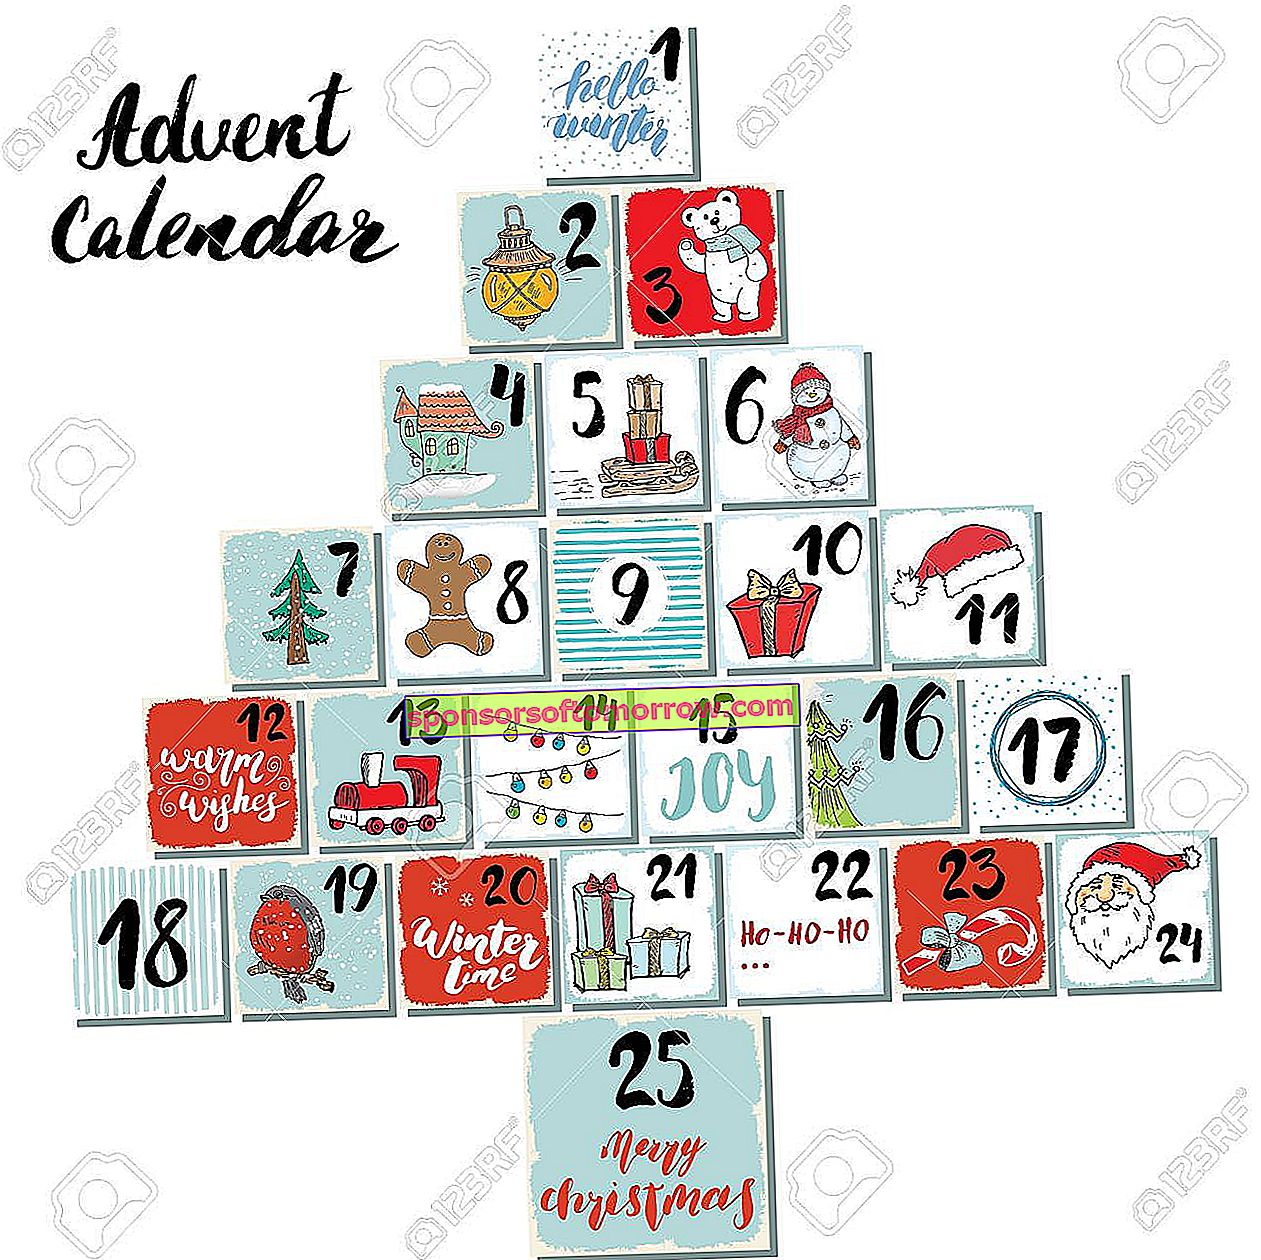 Christmas advent calendar.  Hand drawn elements and numbers.  Winter holidays calendar cards set design, Vector illustration